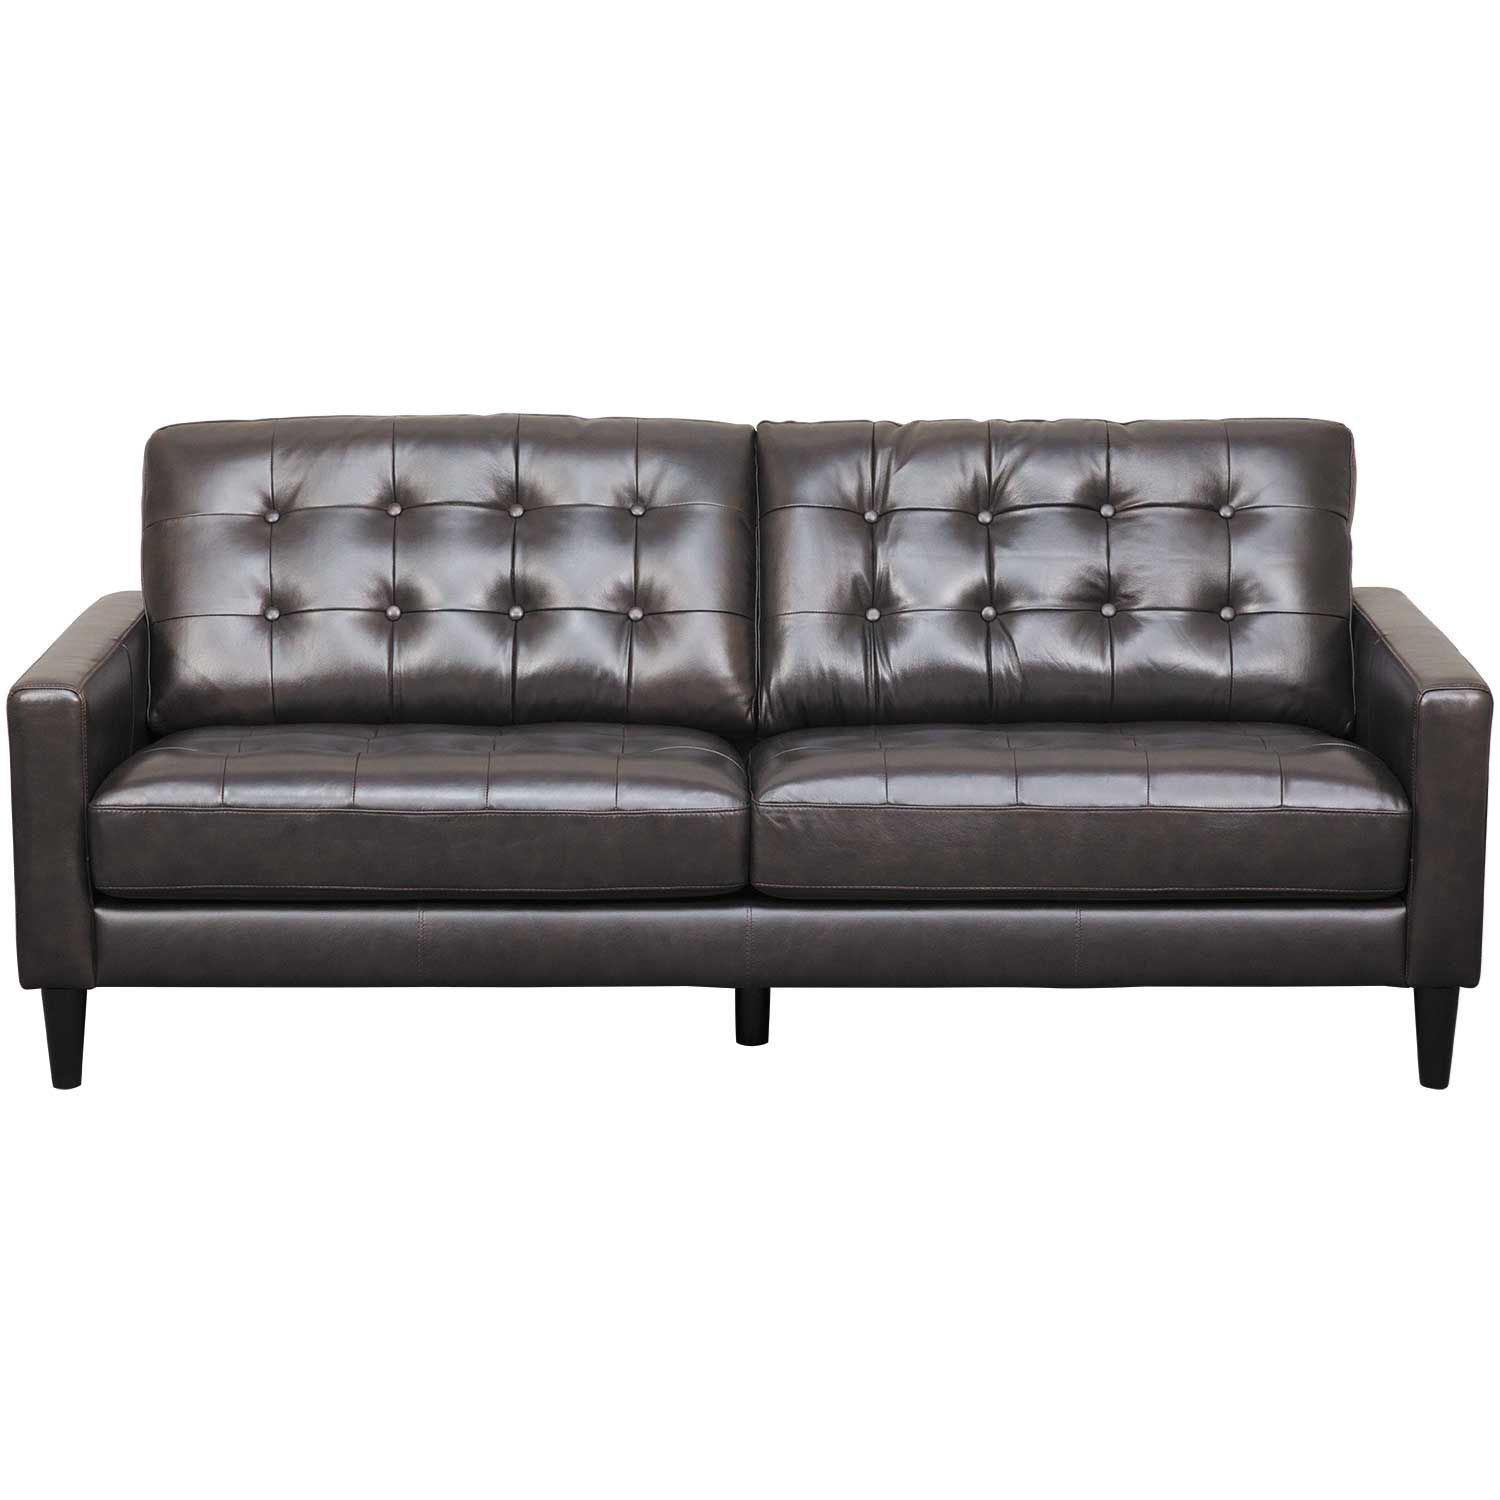 Ashton Dark Brown Leather Sofa